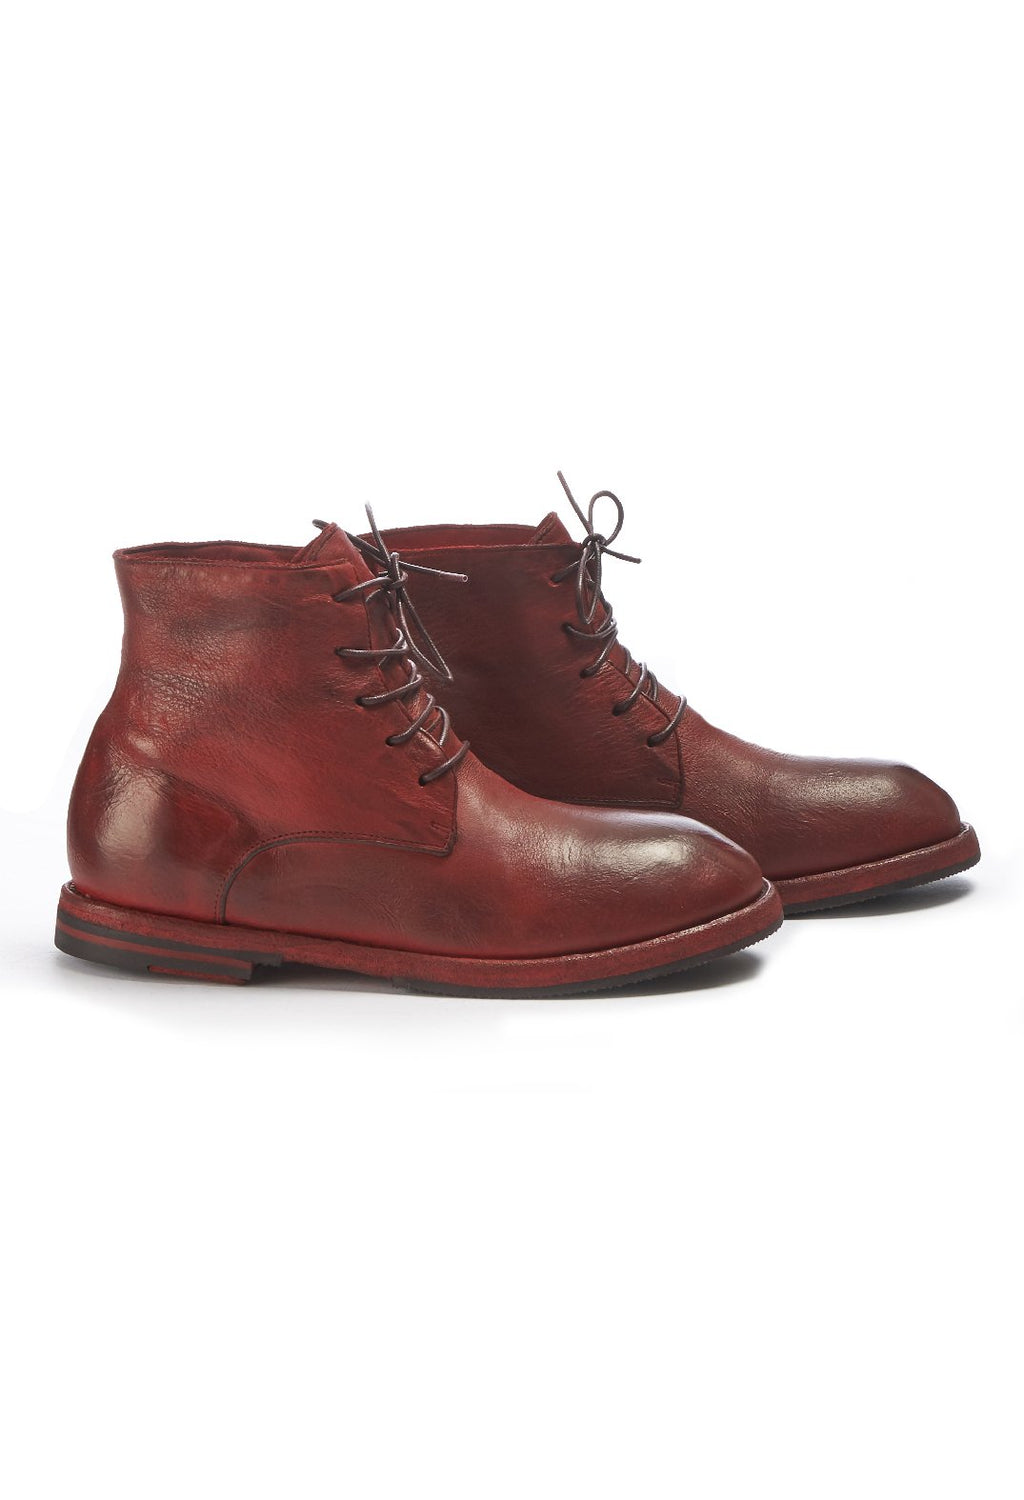 Leather Desert Boots in Karmin